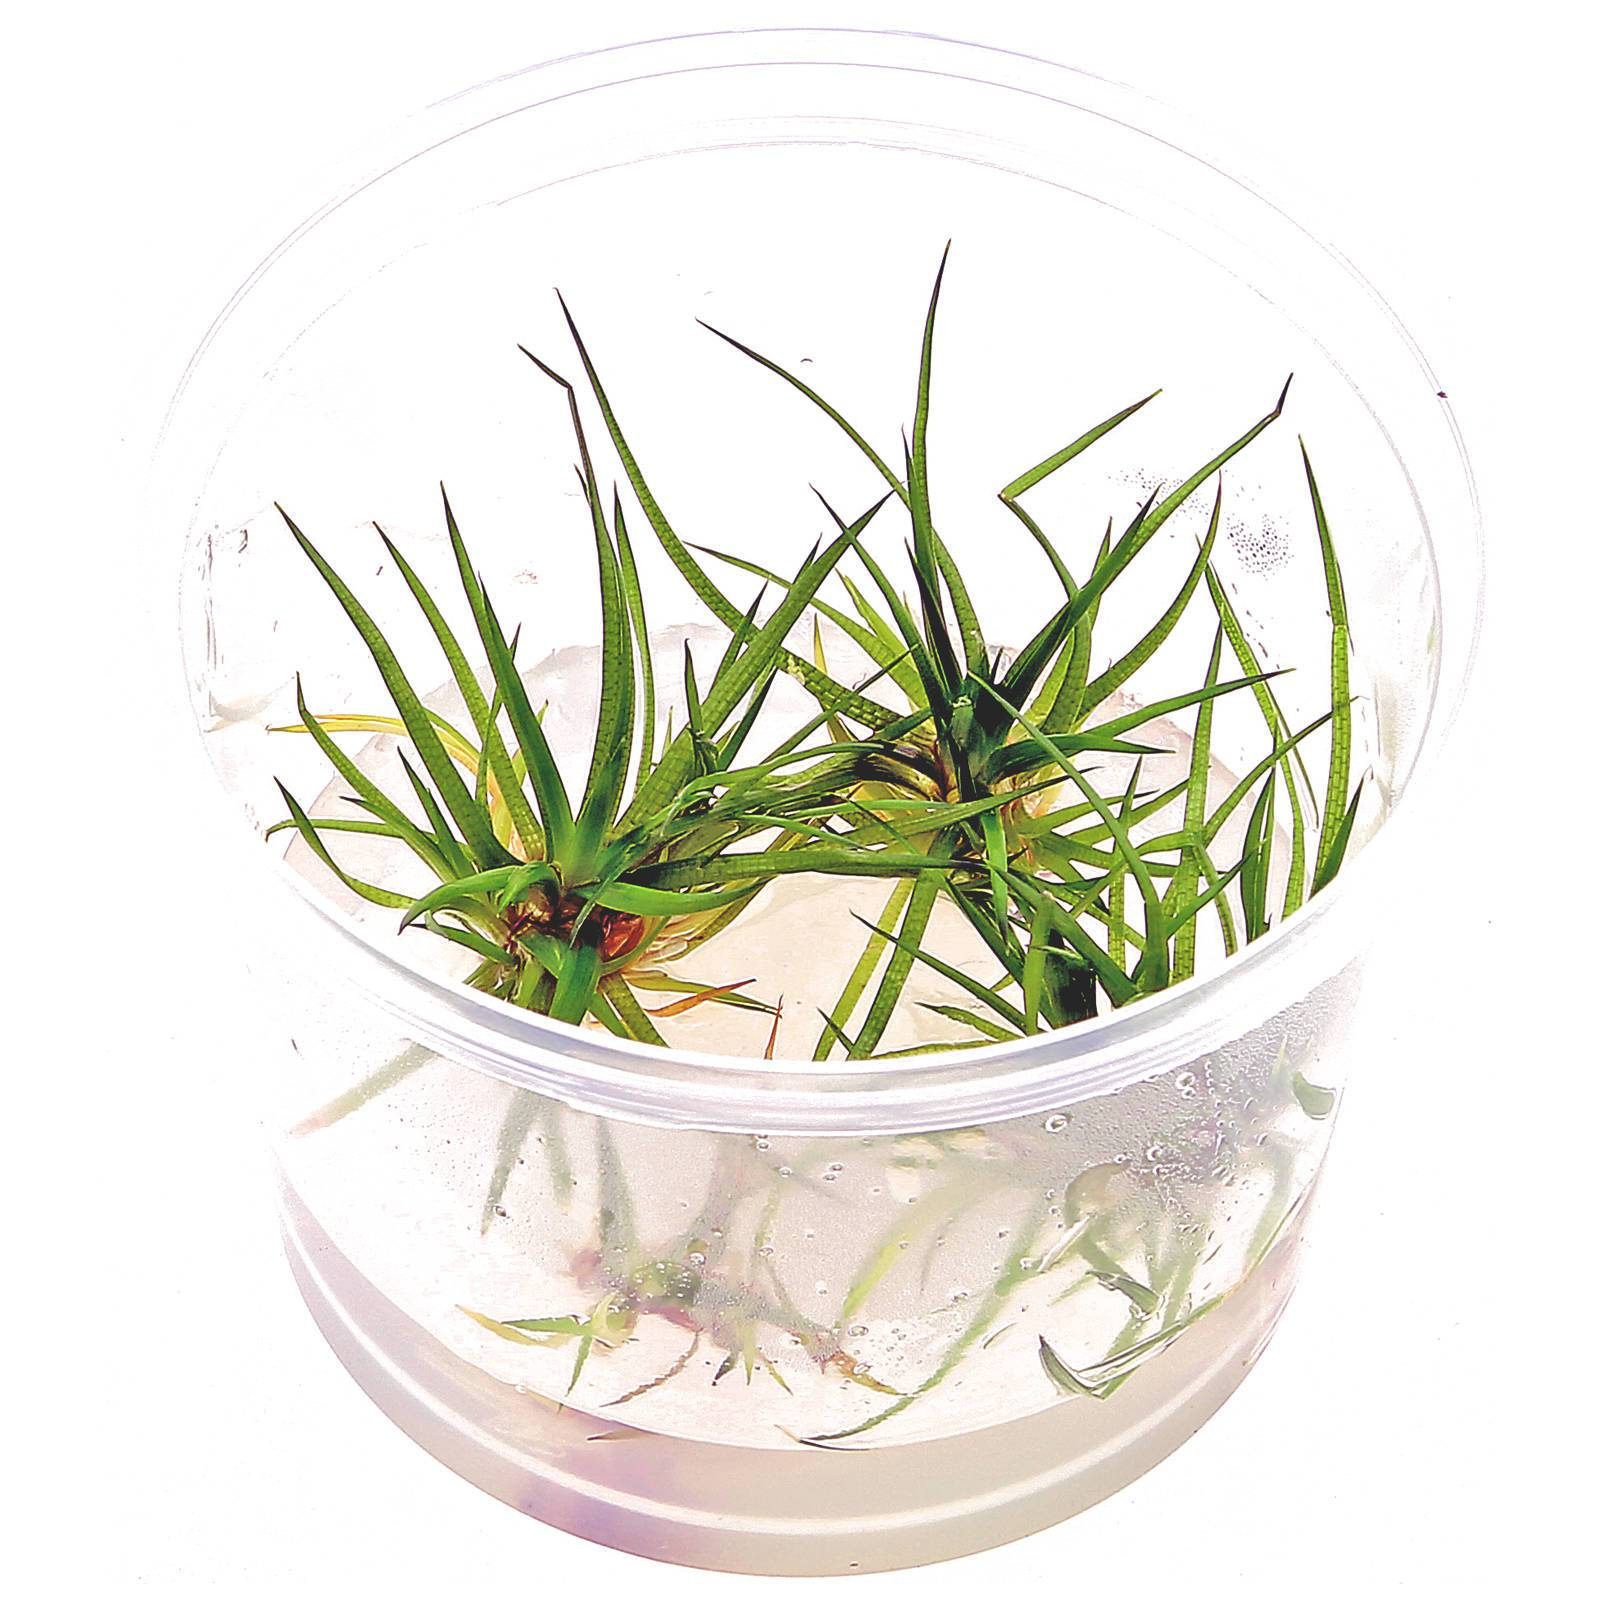 Eriocaulon sp. - in Vitro